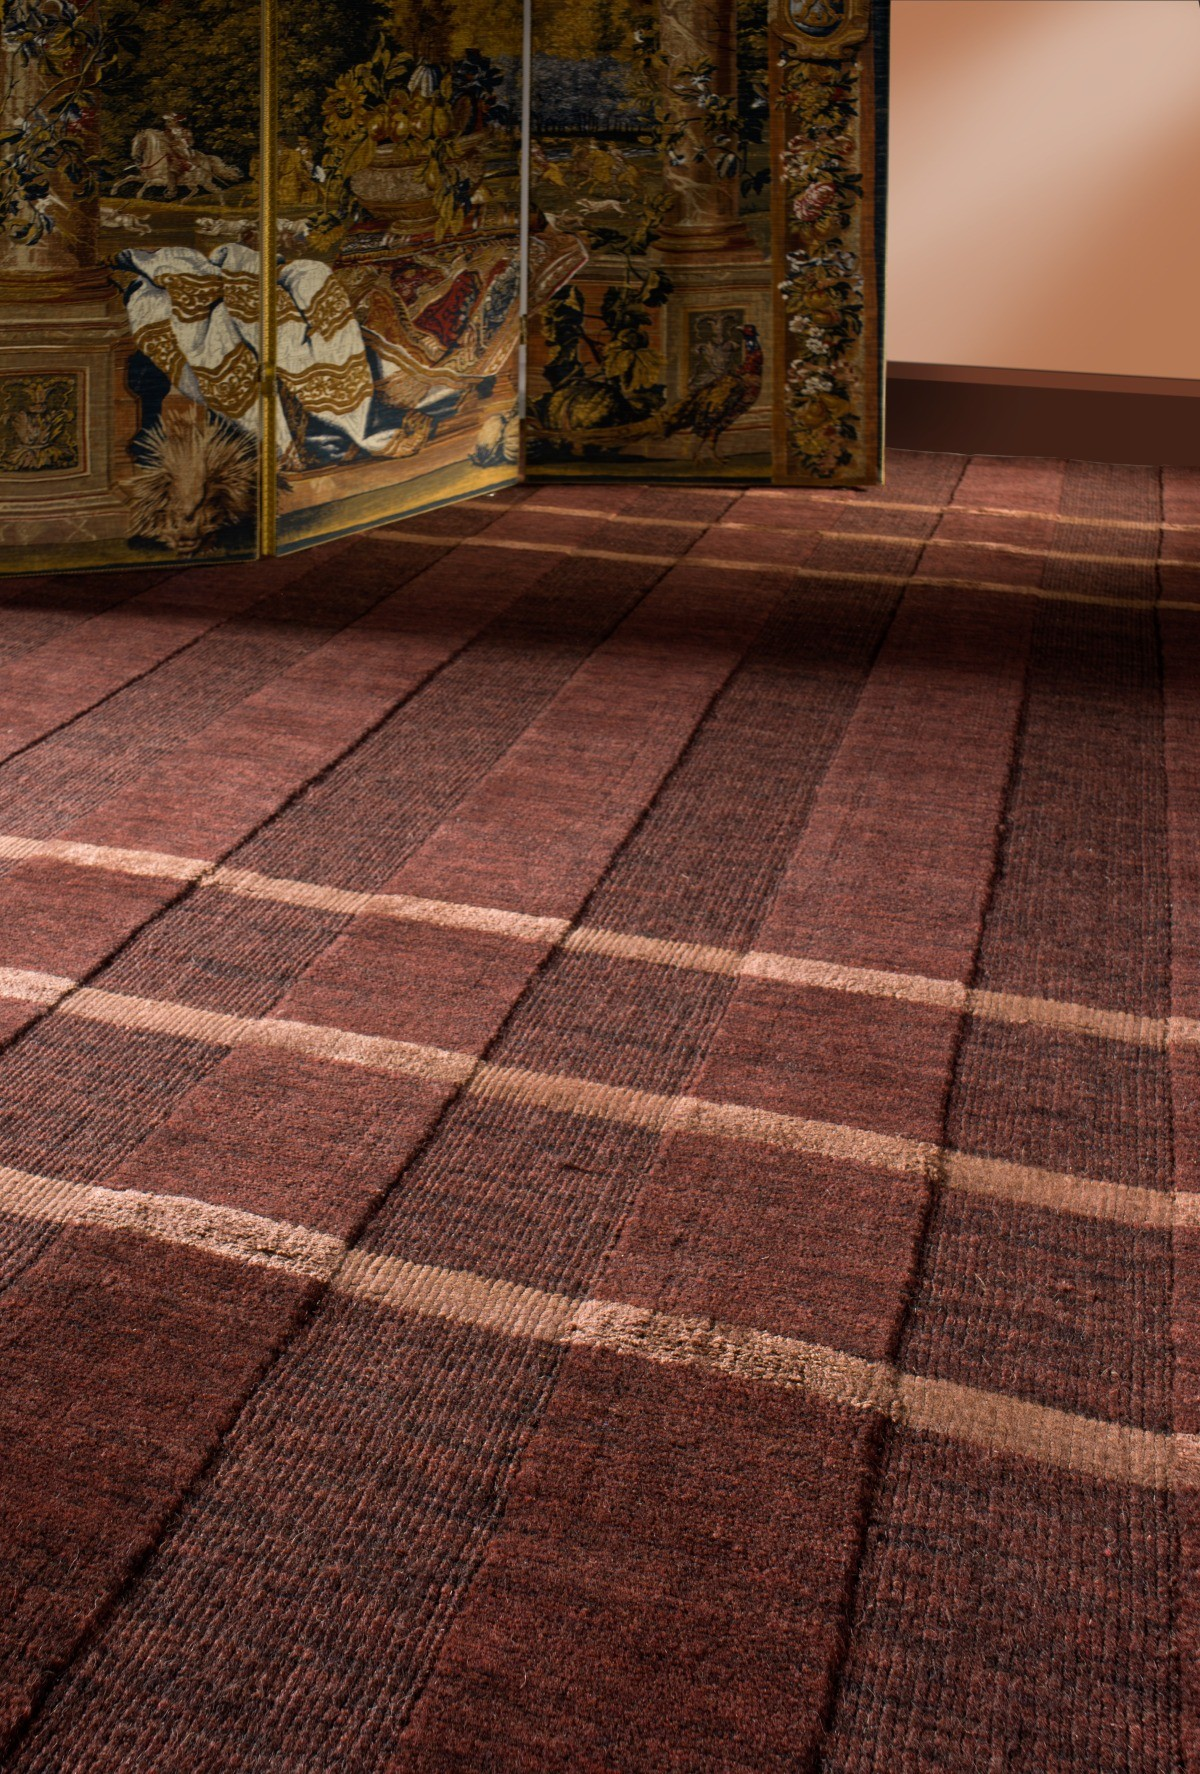 Liven up your home with area rugs la furniture blog - Types of floor rugs to liven up your home ...